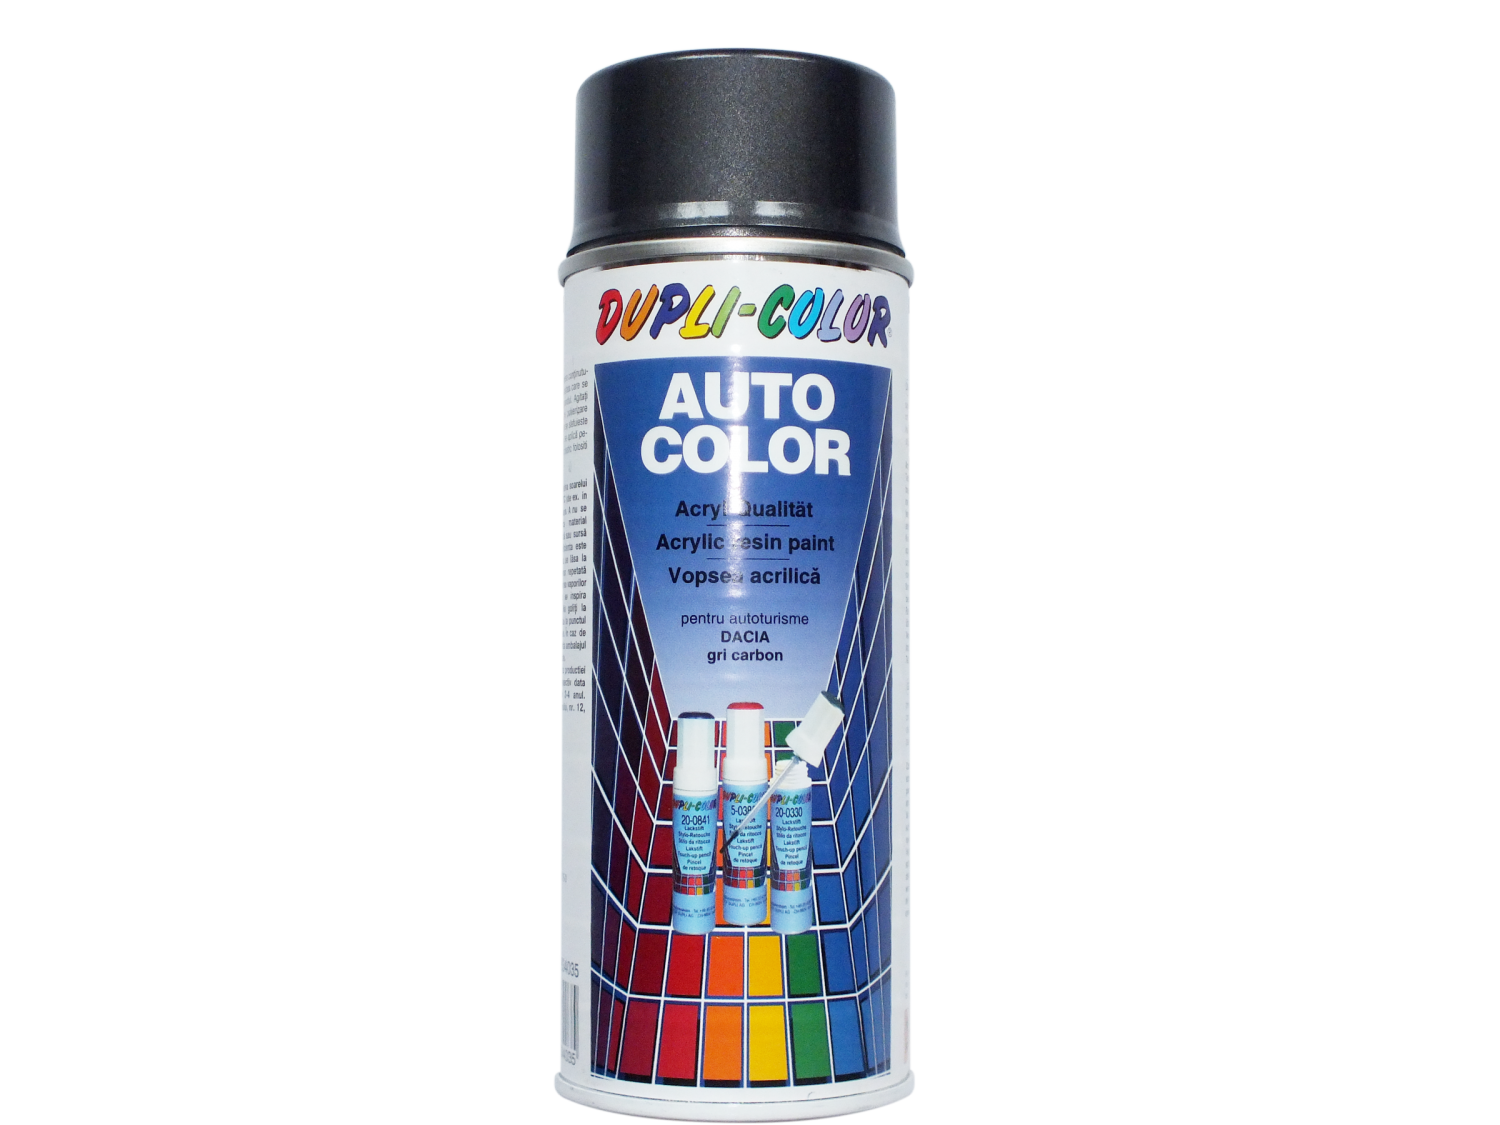 Spray vopsea auto, Dupli - Color, gri carbon metalizat, interior / exterior, 350 ml